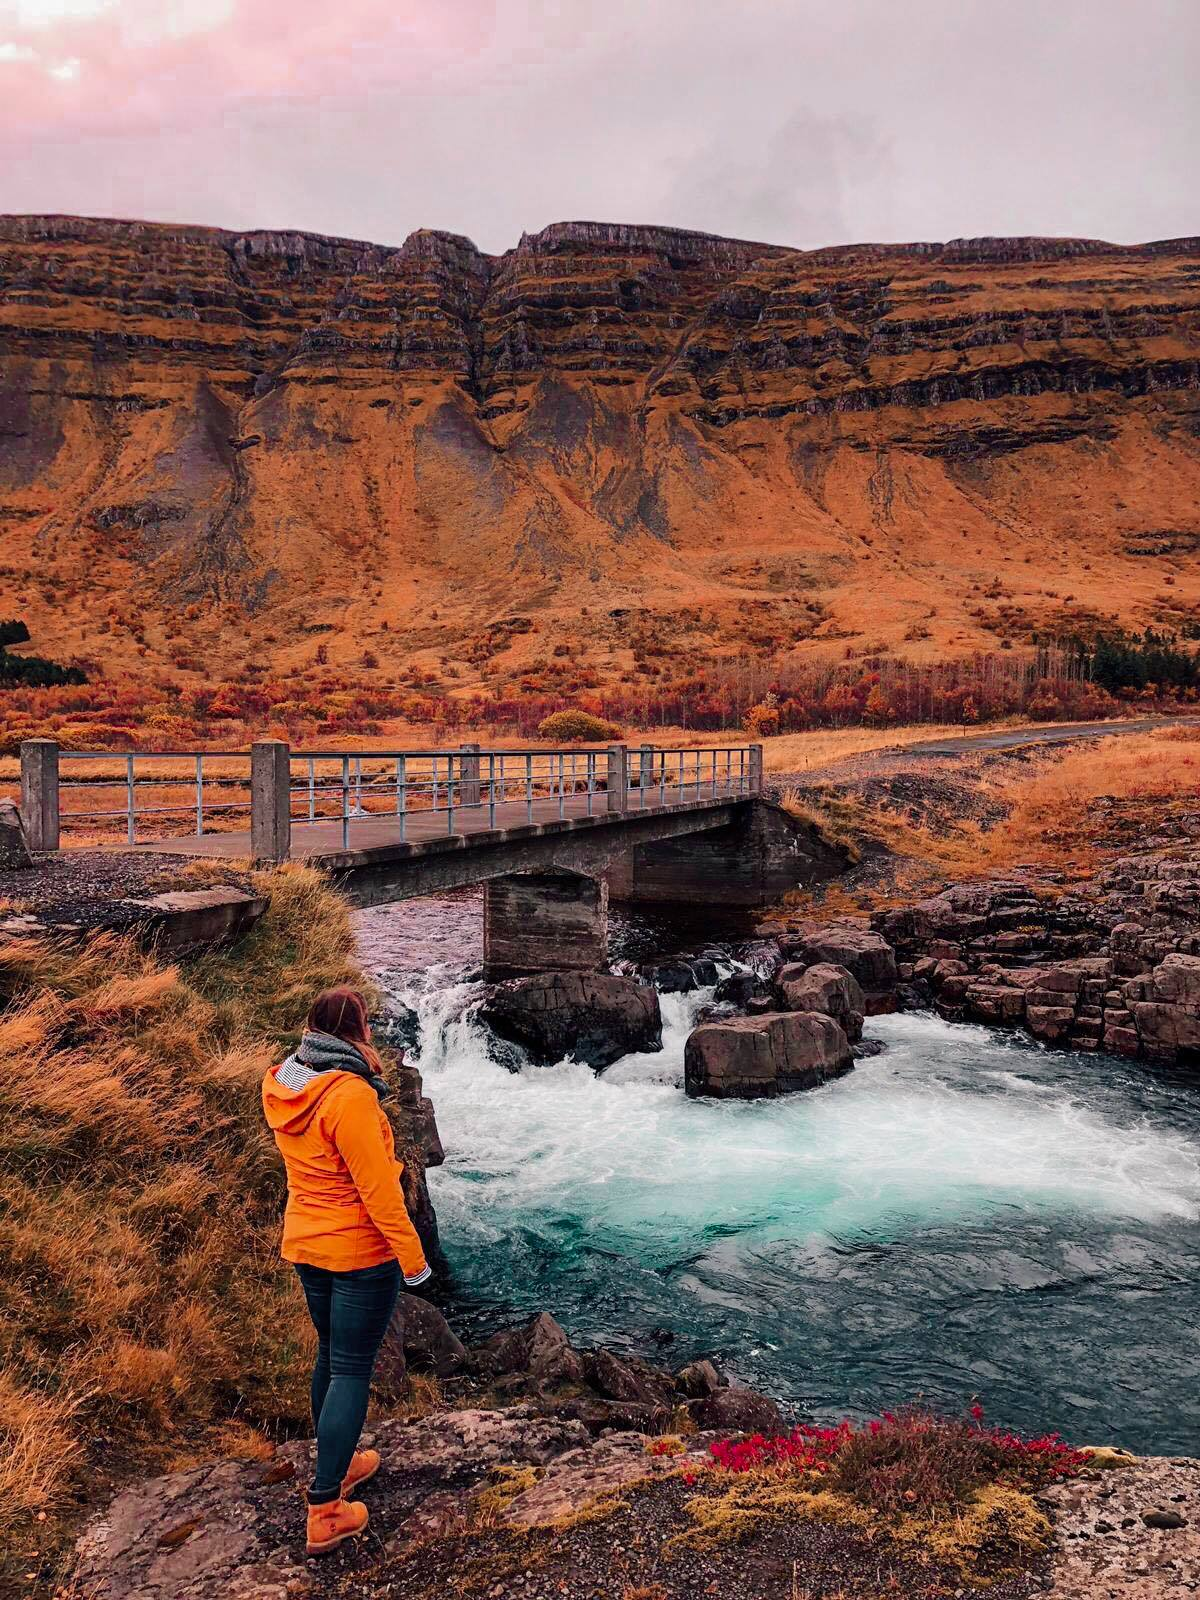 A girl in yellow jacket looking at a bridge on a bright blue river. The river is surrounded by orange and red grass/rocks.